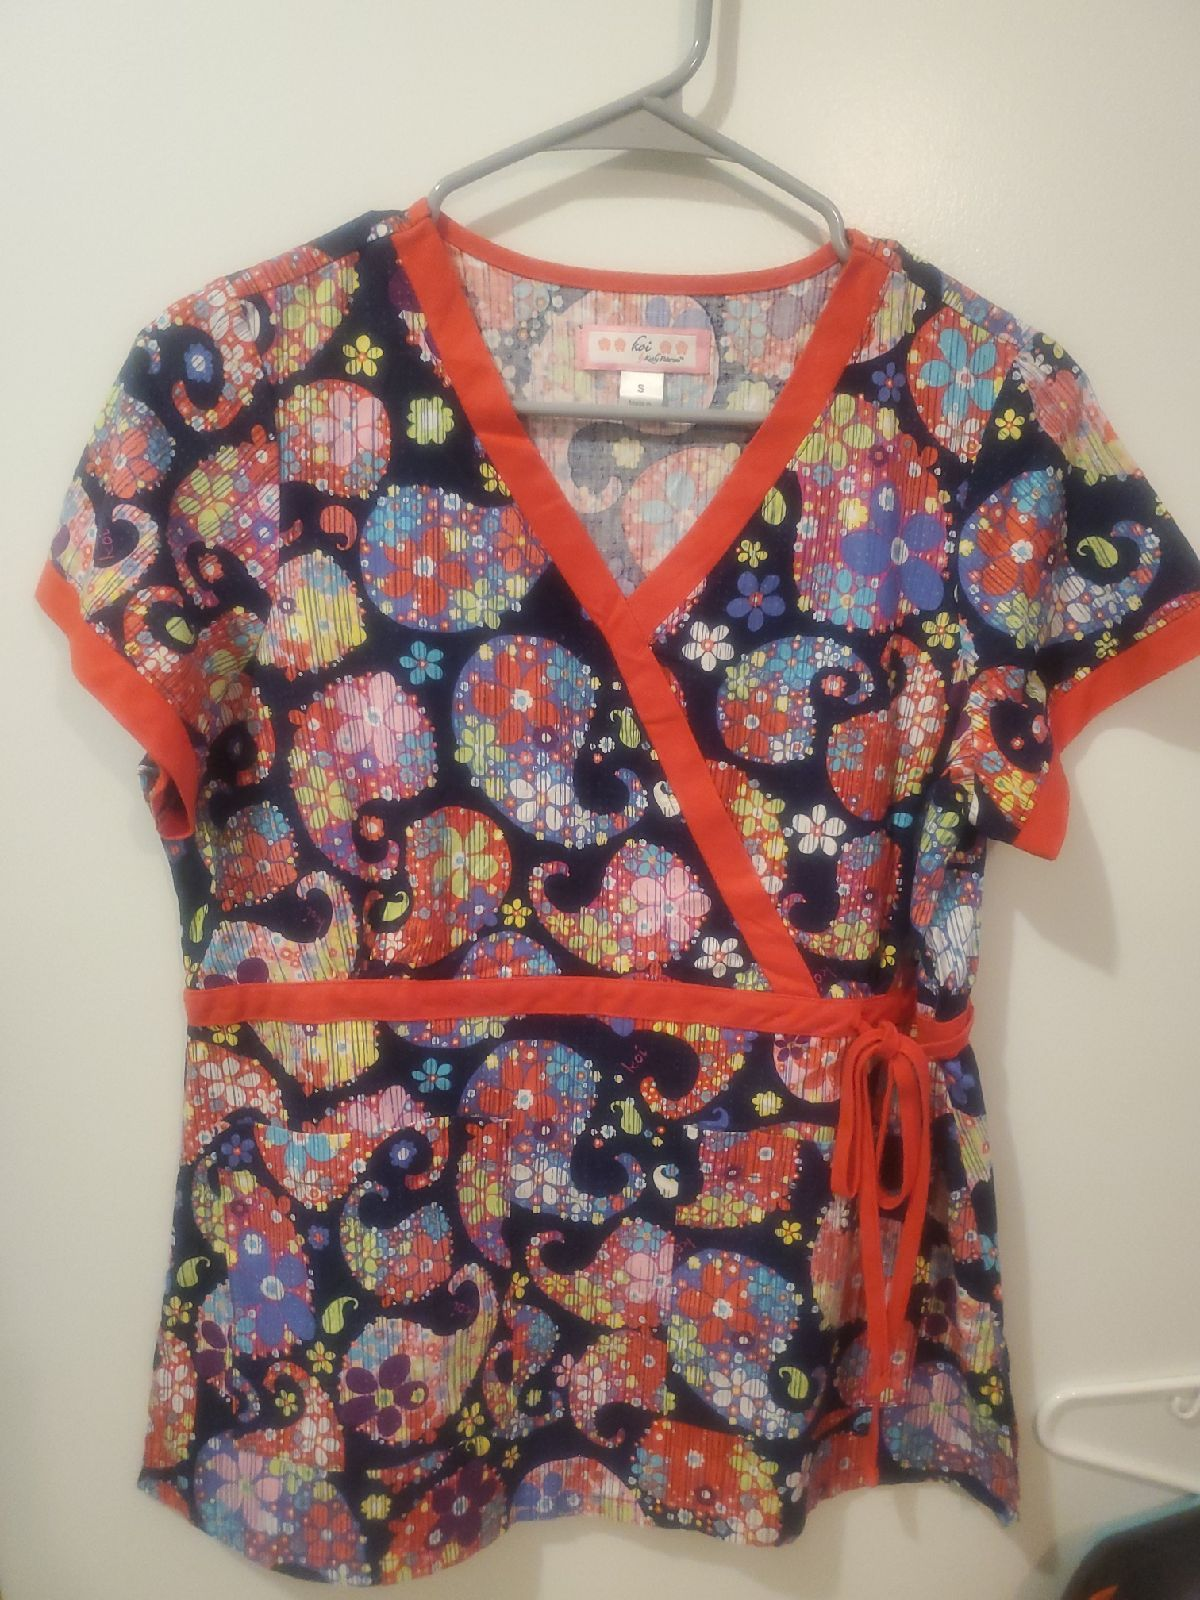 NWOT Koi Navy Blue Red Scrub Top Small S